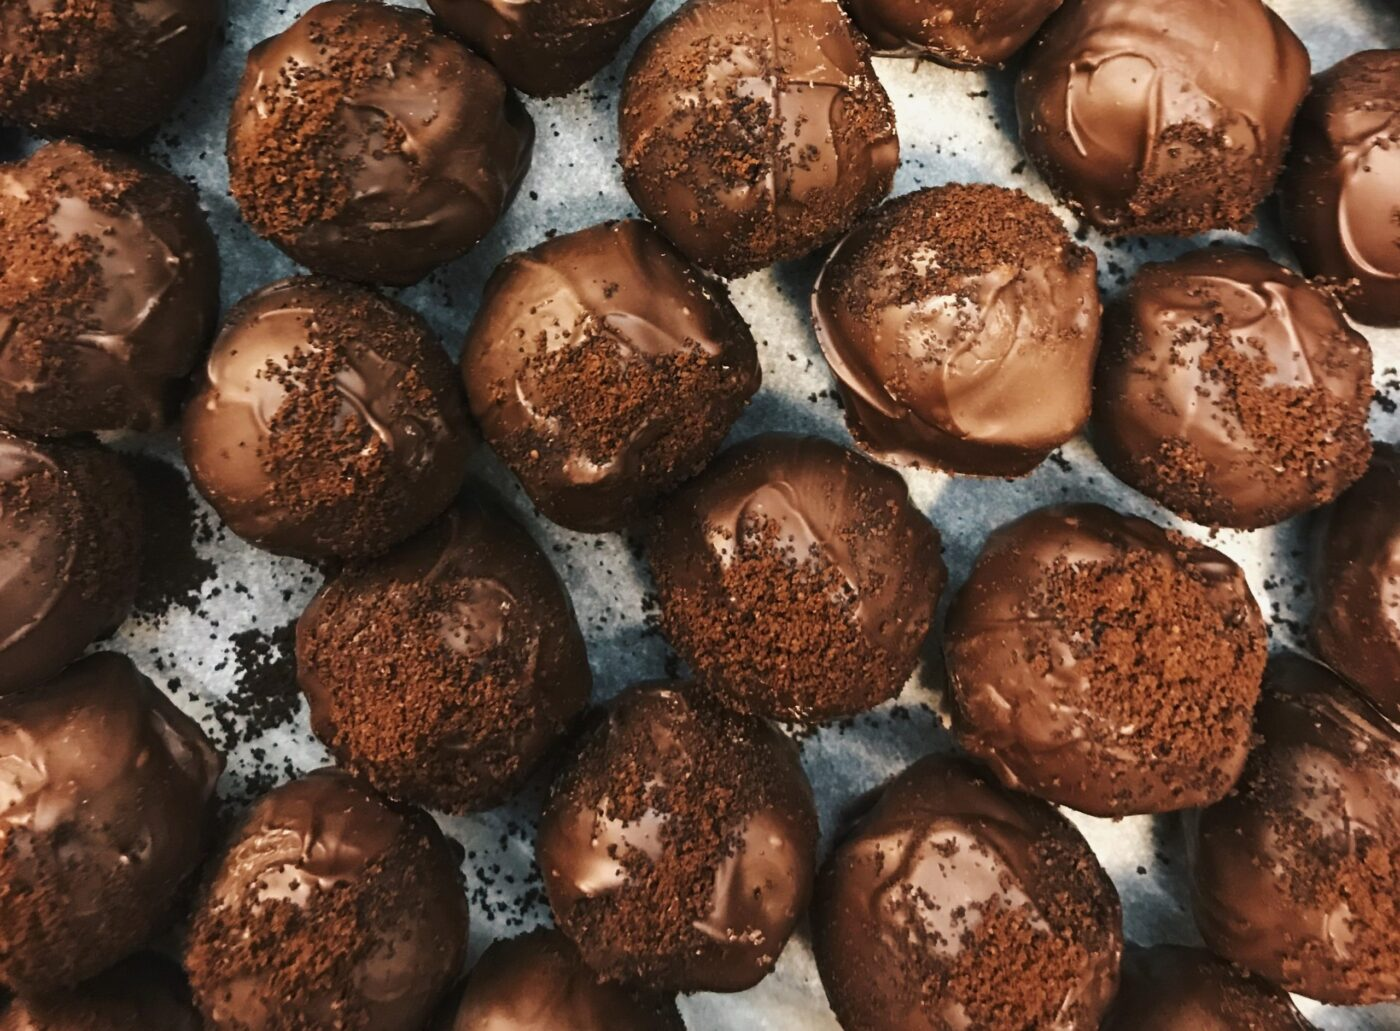 What can I do with cooking chocolate?